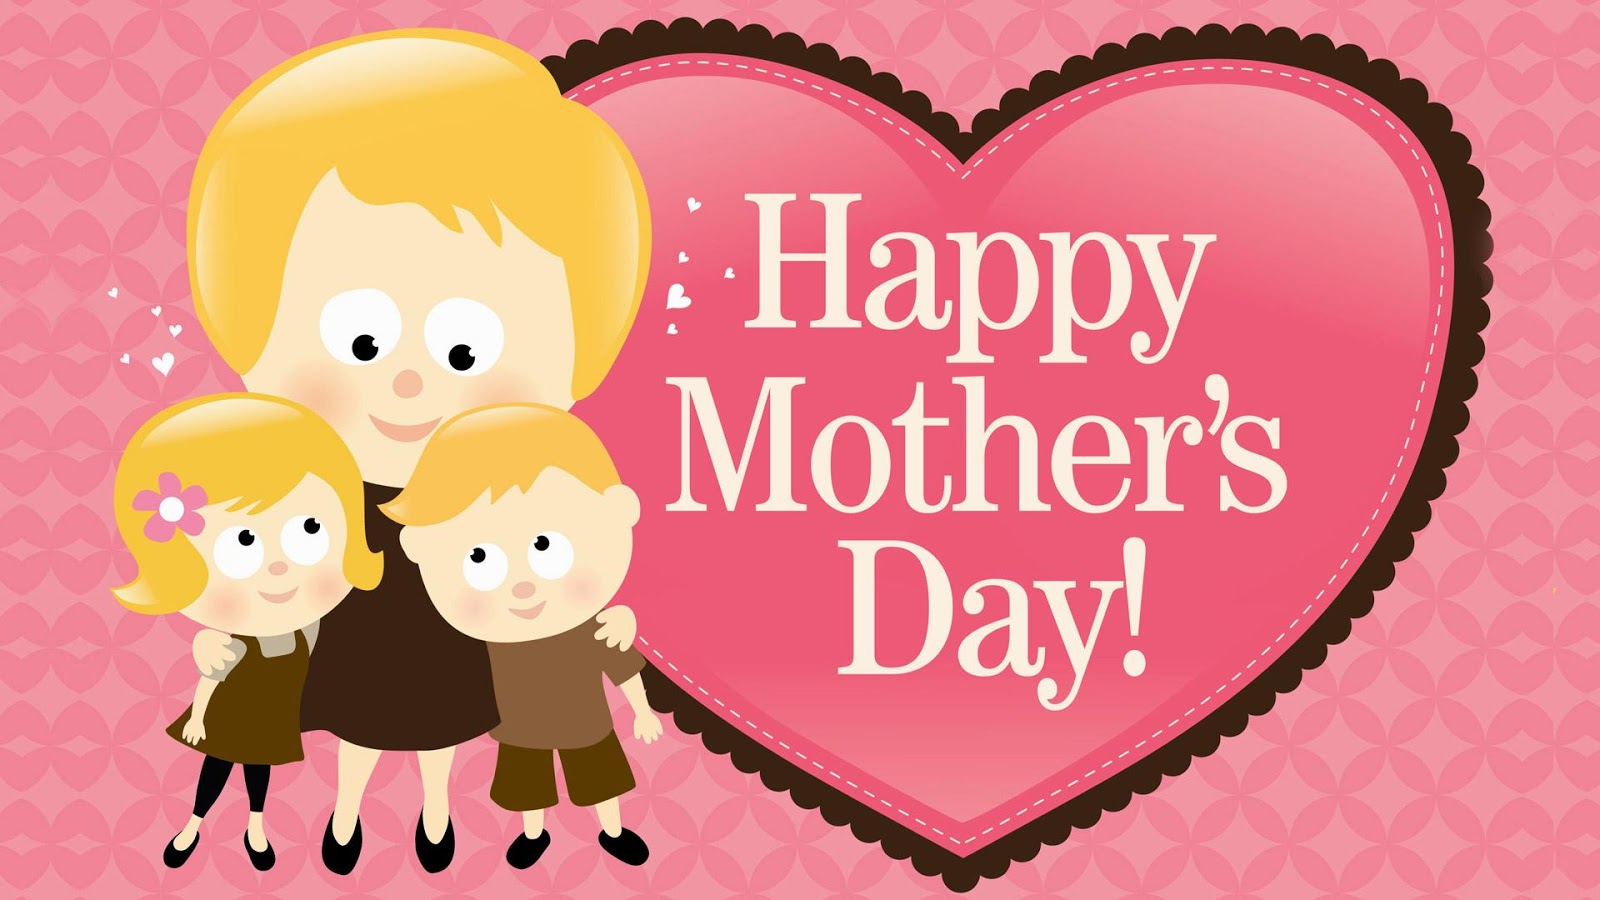 Best Mothers Day 2020 Hd Images Wallpapers Beautiful